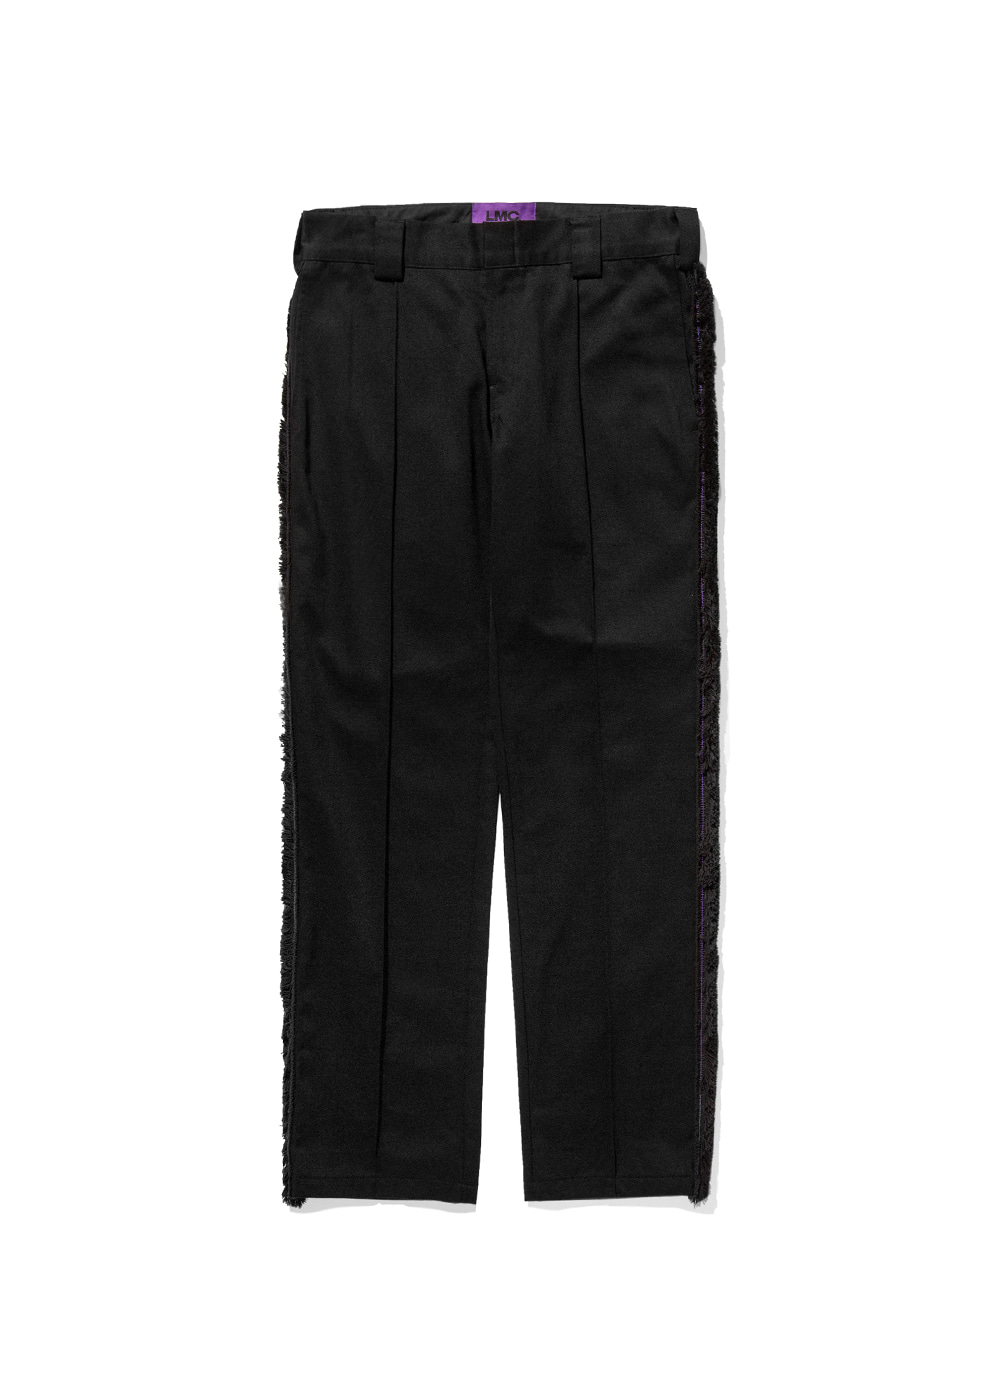 LMC x FUZZ MARCHING BAND PANTS black